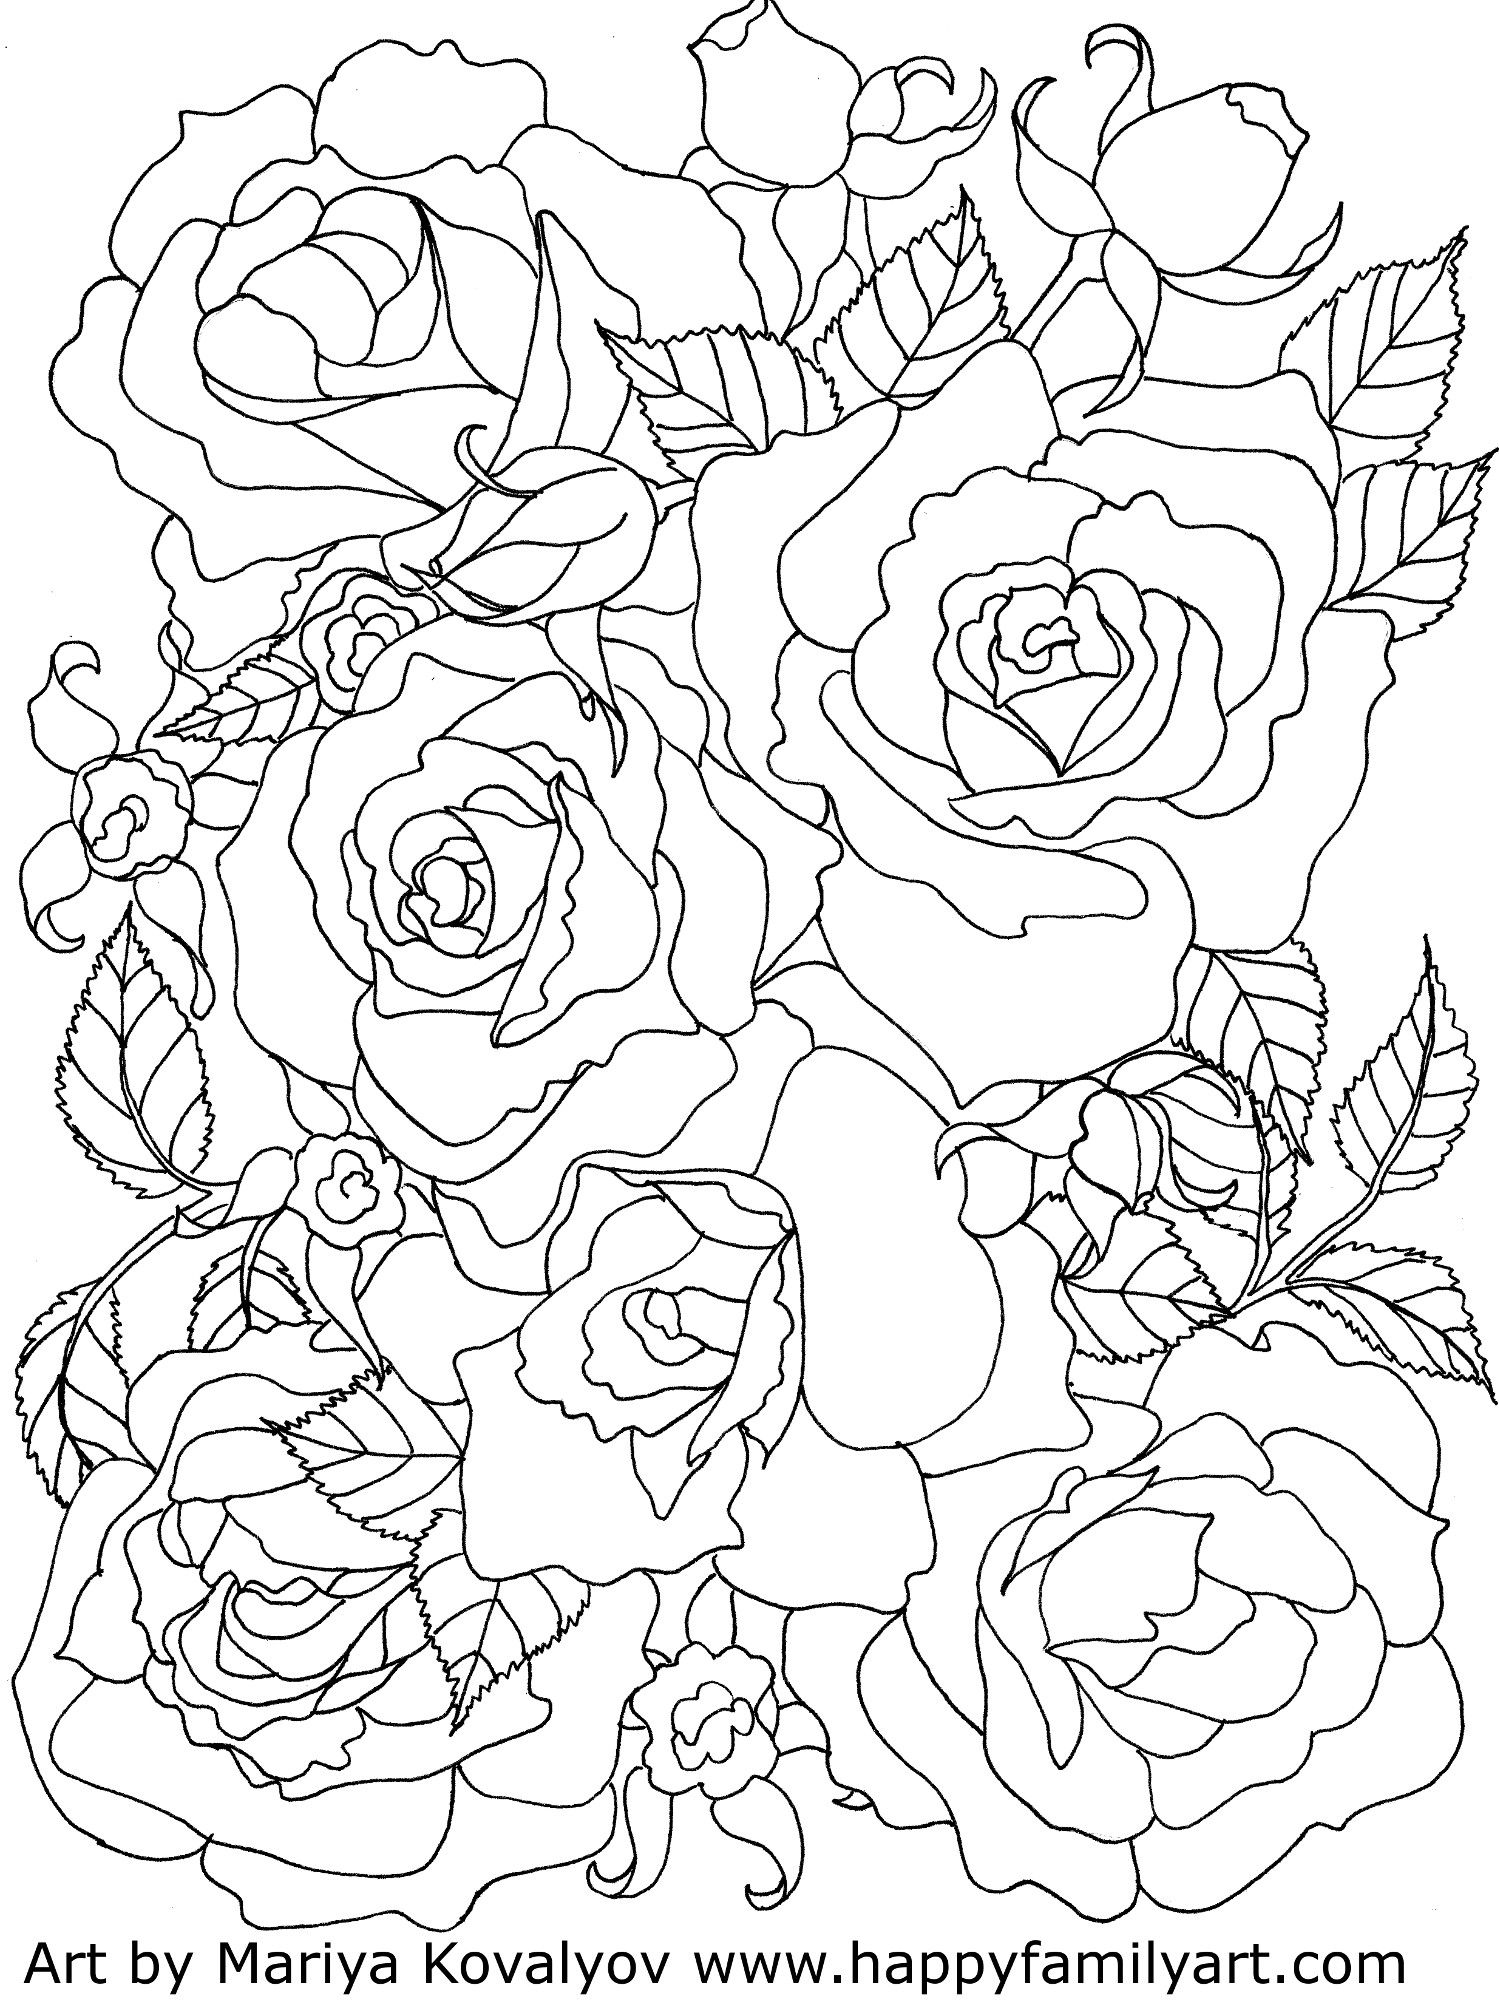 Coloring Pages Angry Birds Coloring Pages Rose Coloring Pages Flower Sketch Images Flower Coloring Pages